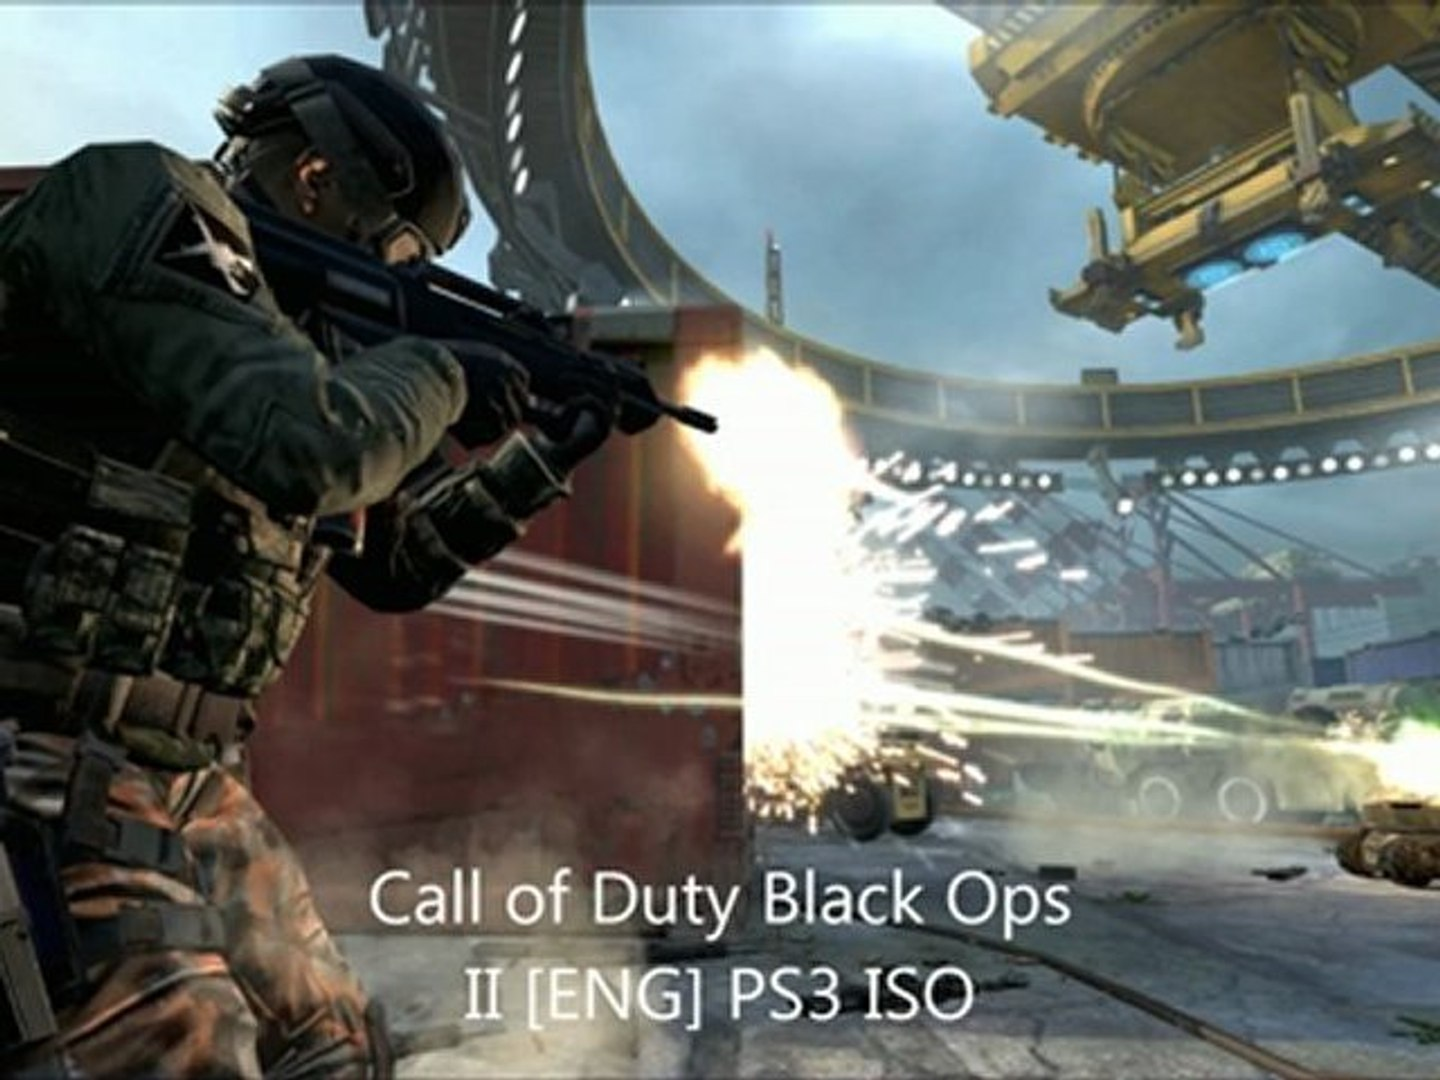 Call Of Duty Black Ops Ii Eng Ps3 Iso Full Game Download Video